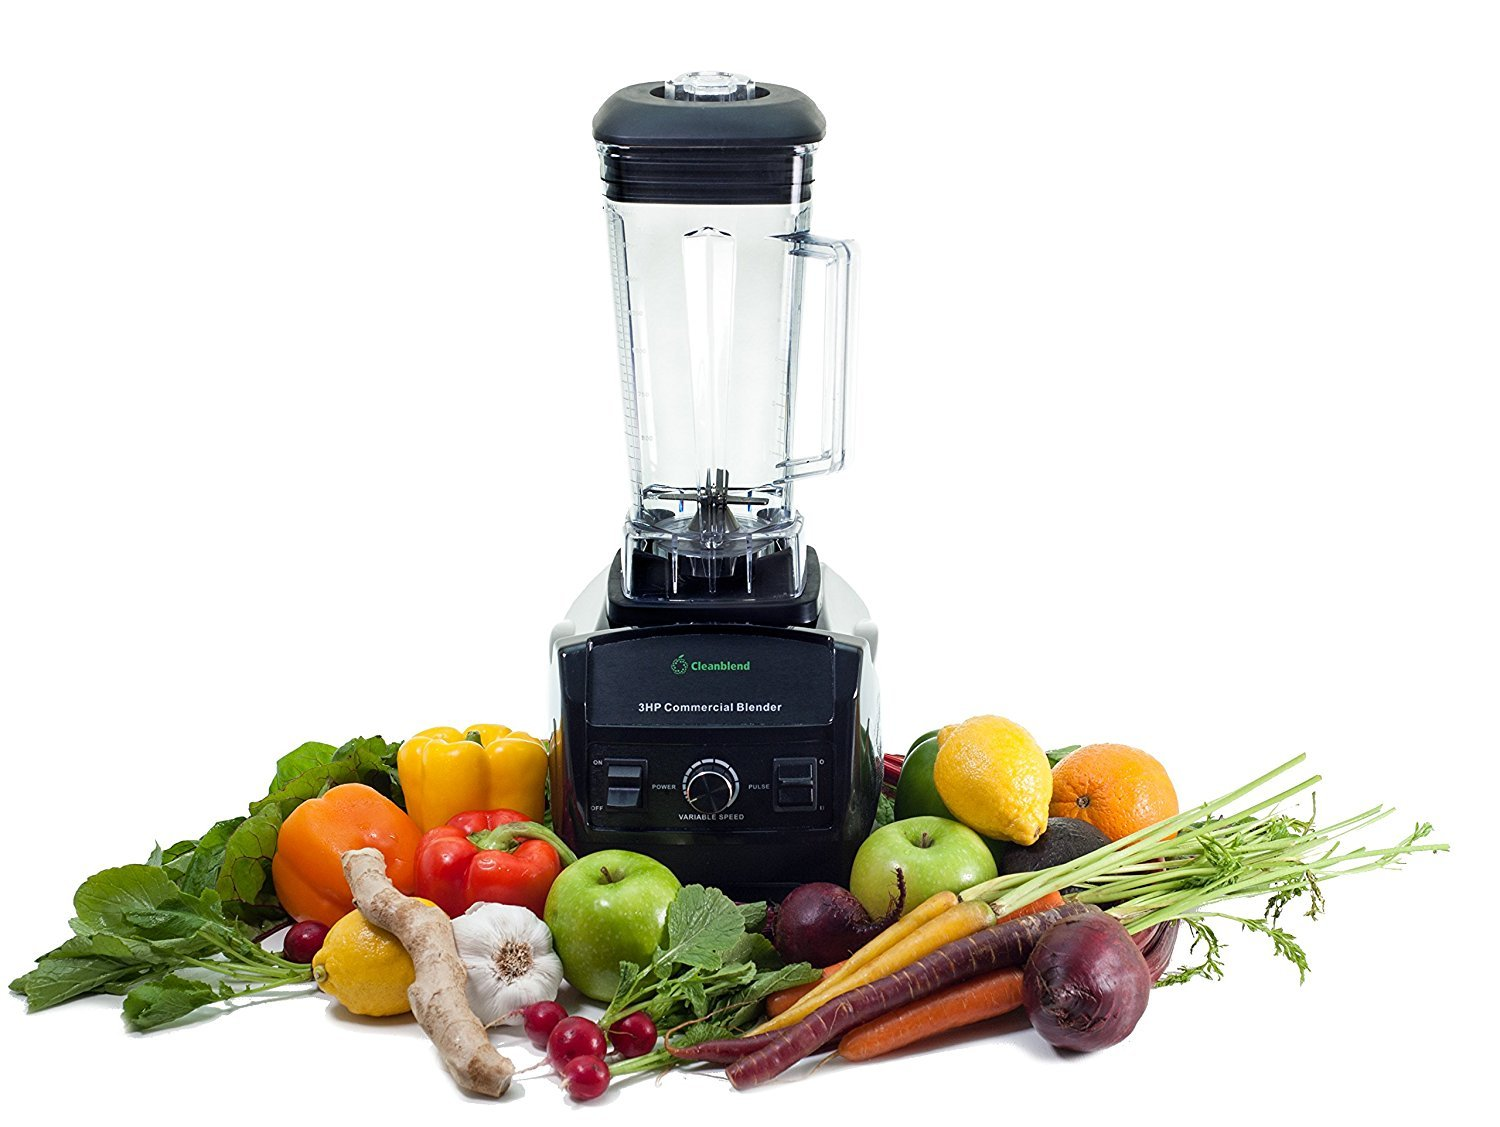 commercial blender features & reviews - Cleanblend 3HP 1800-Watt Commercial Blender